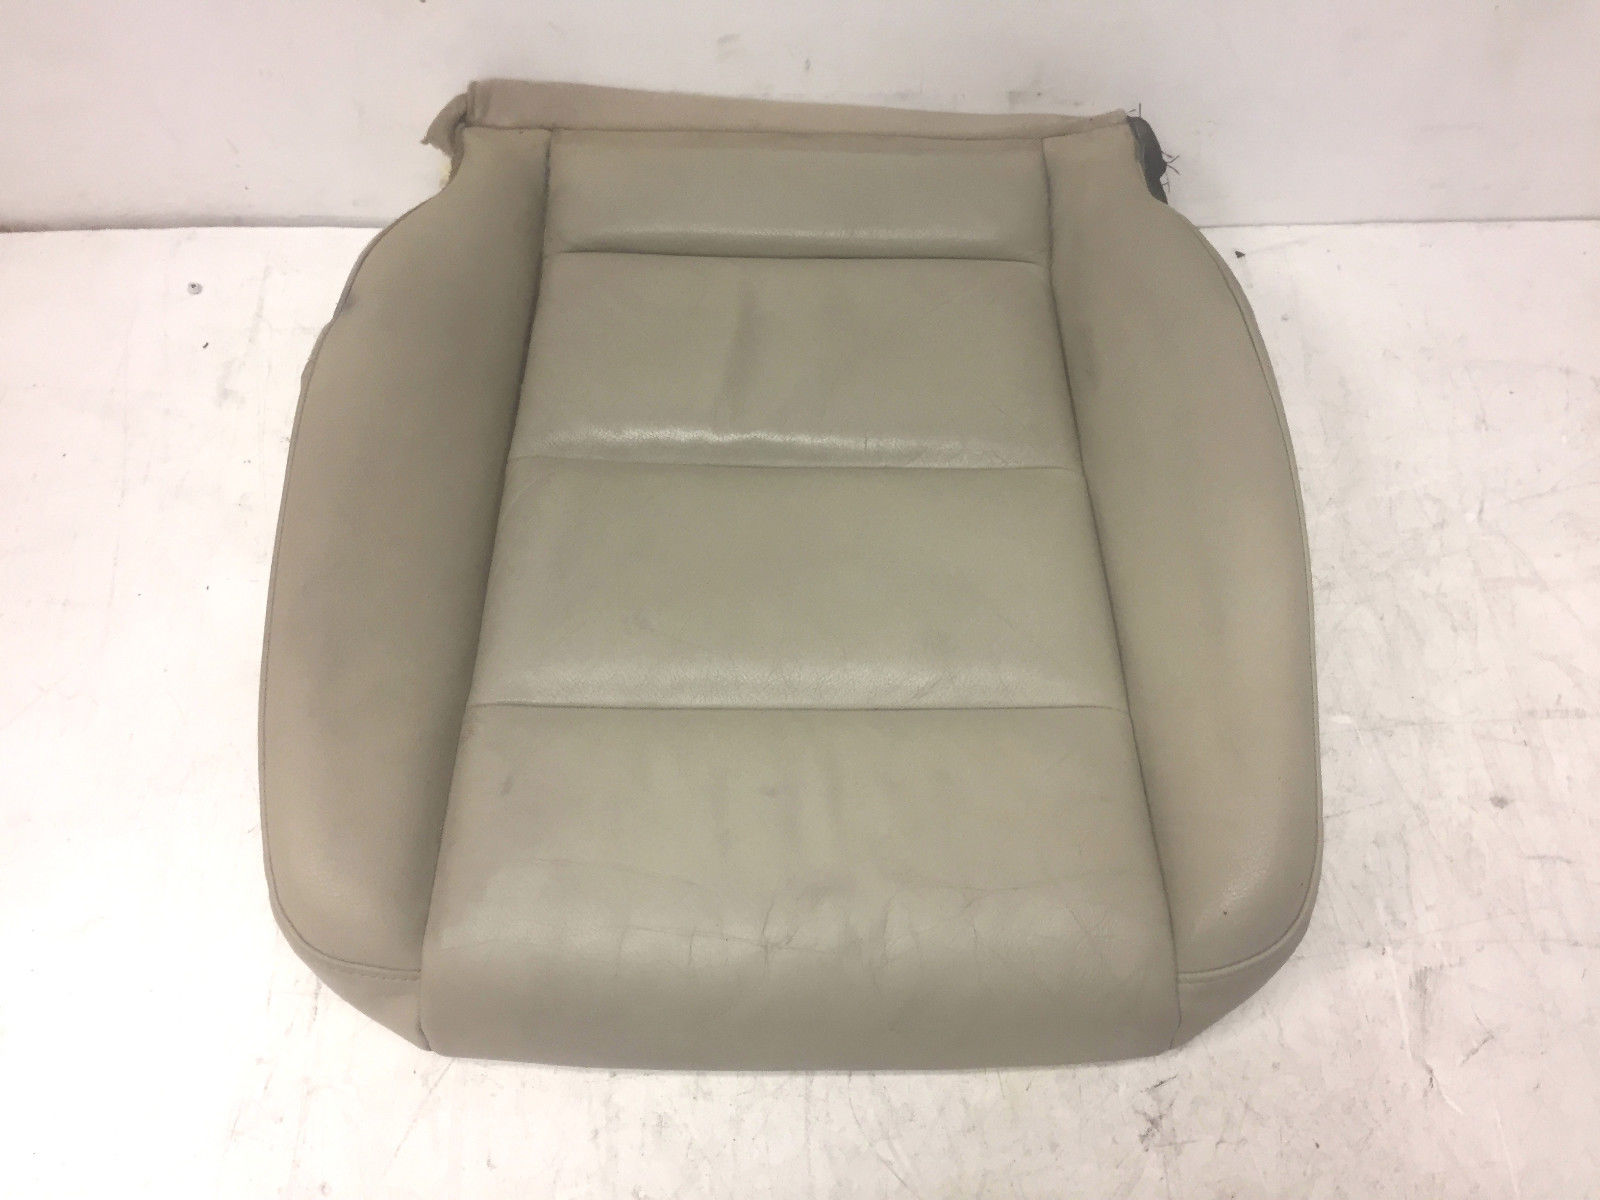 2008 Audi A4 Front Left Driver Said Lower Cover White Seat